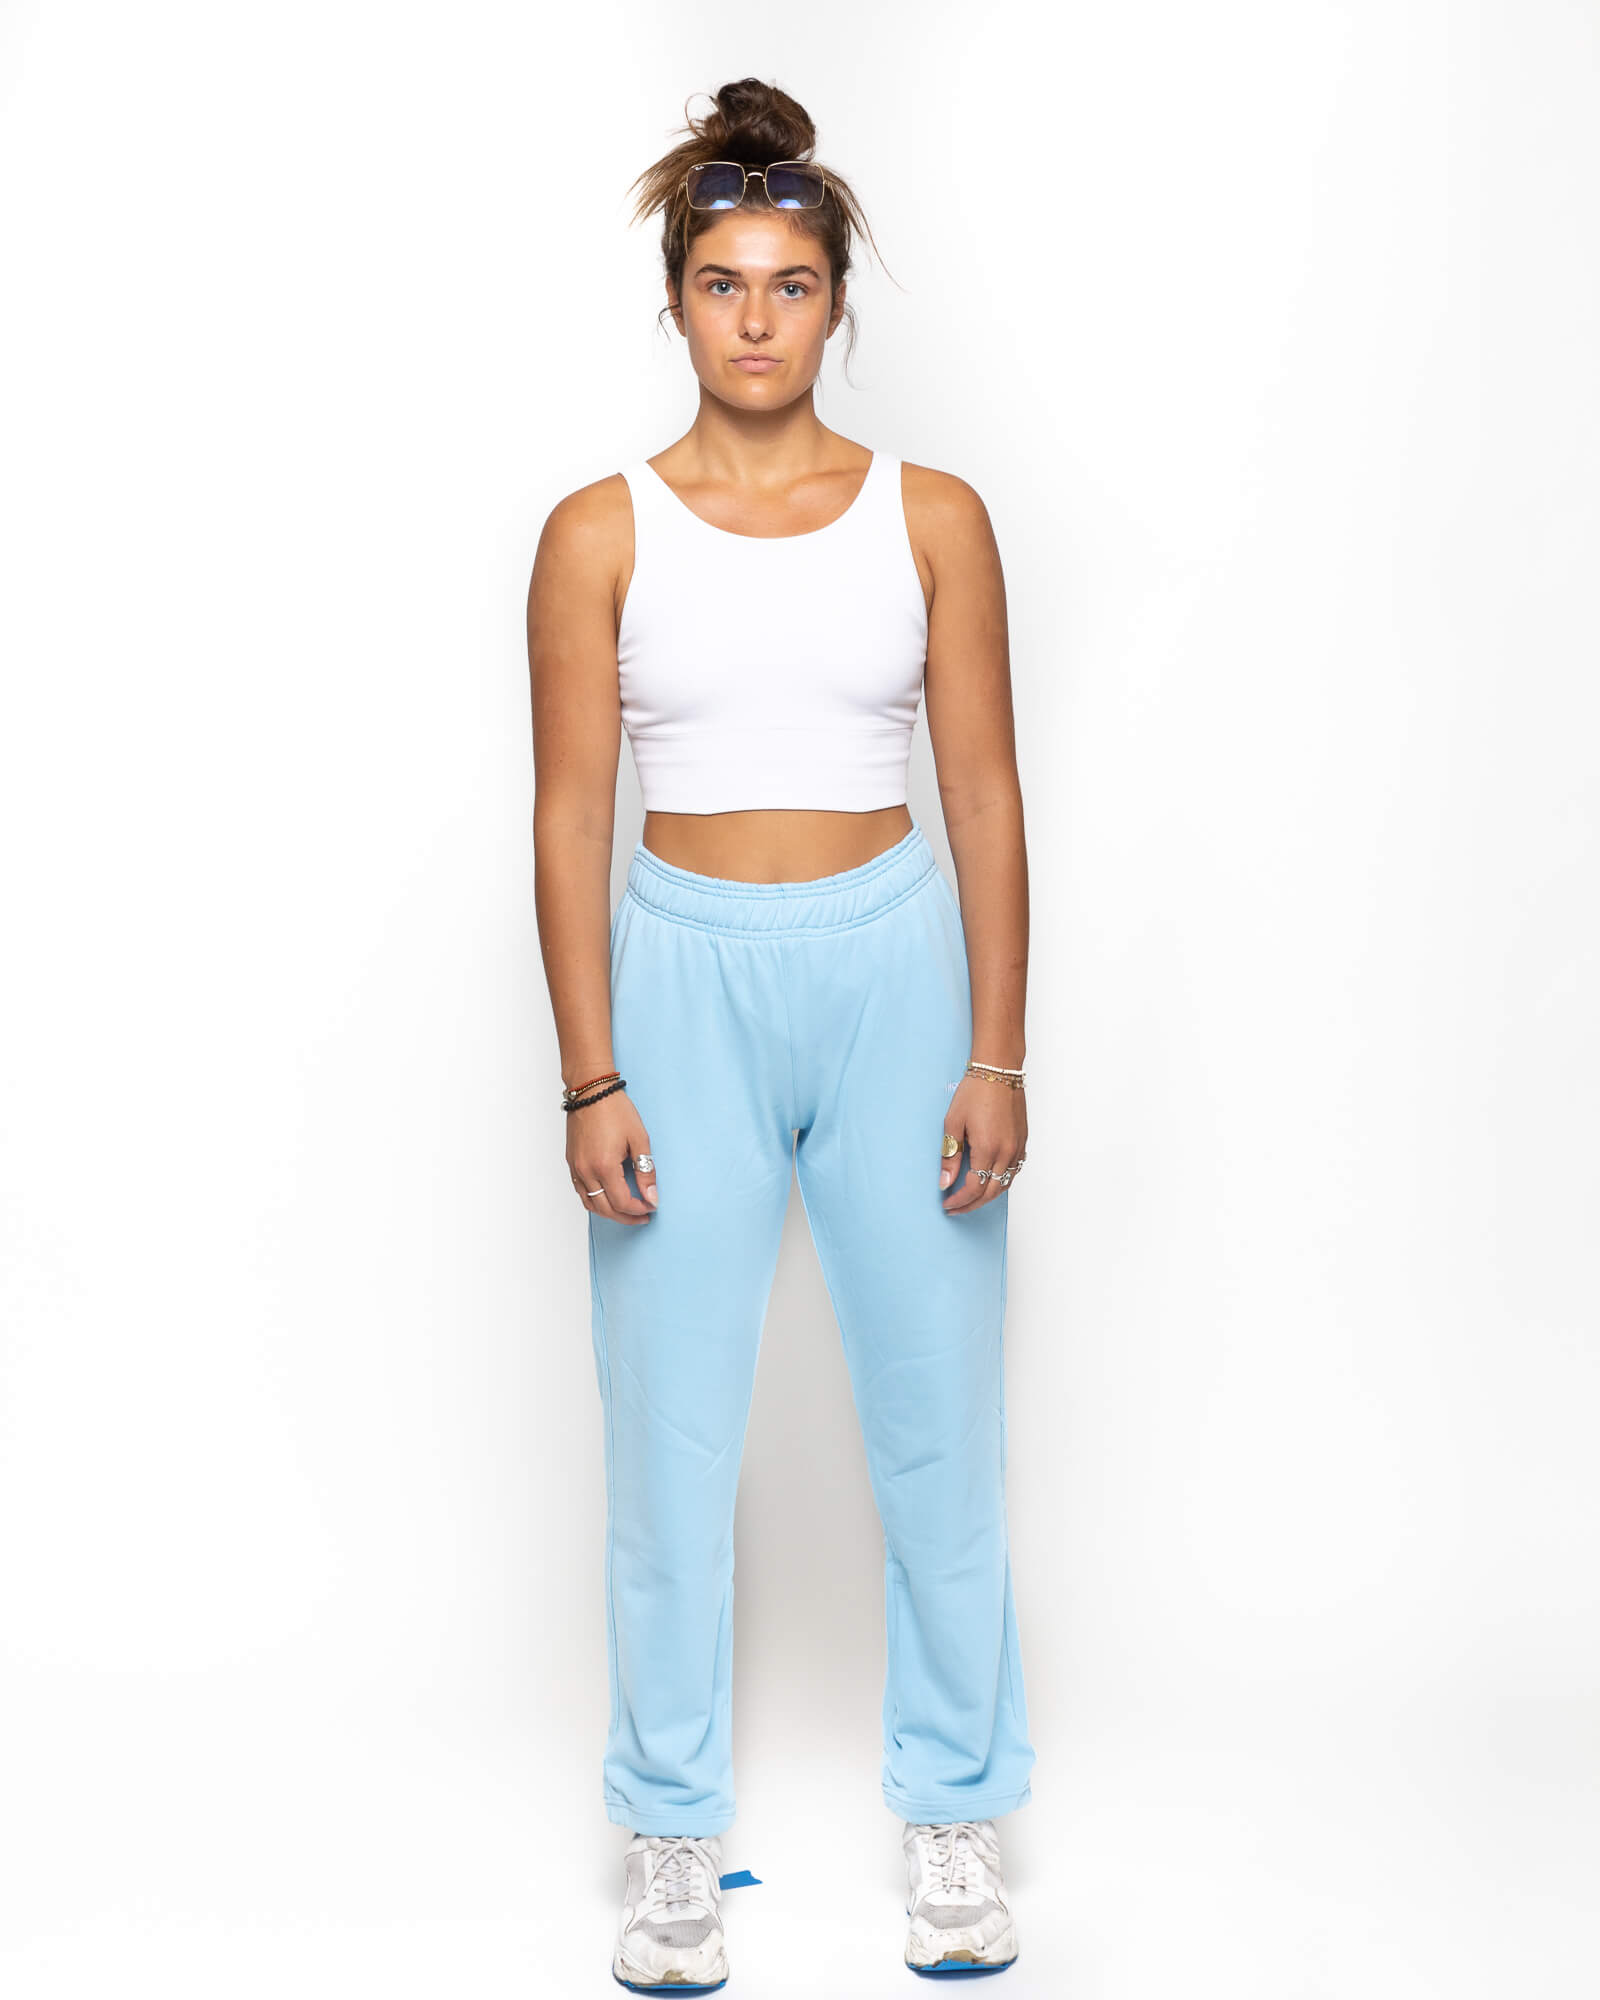 front view of a female model wearing the blue sunday sweats with a white tank top